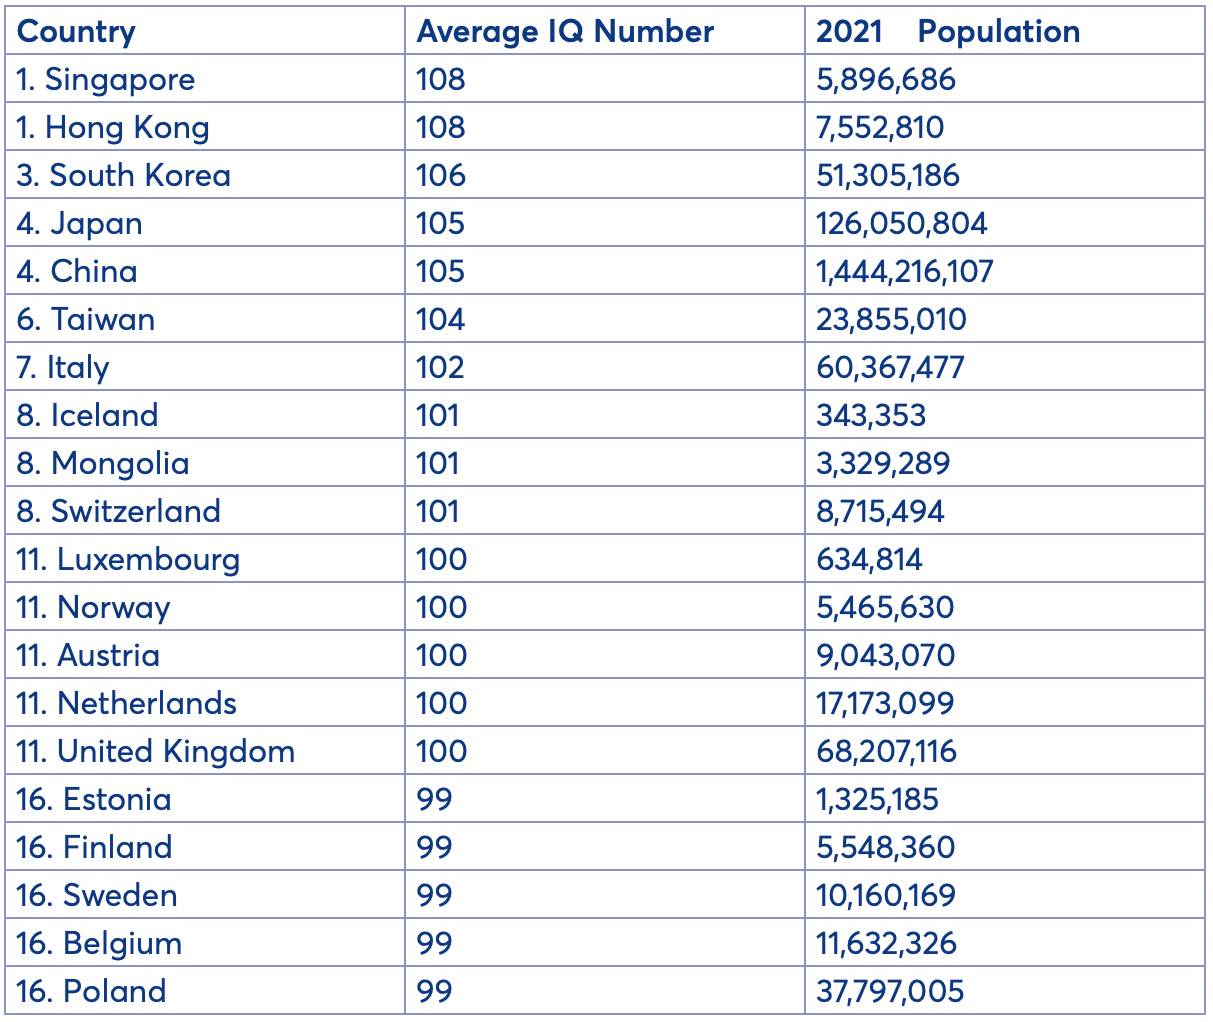 Smartest Countries In The World by average IQ Number